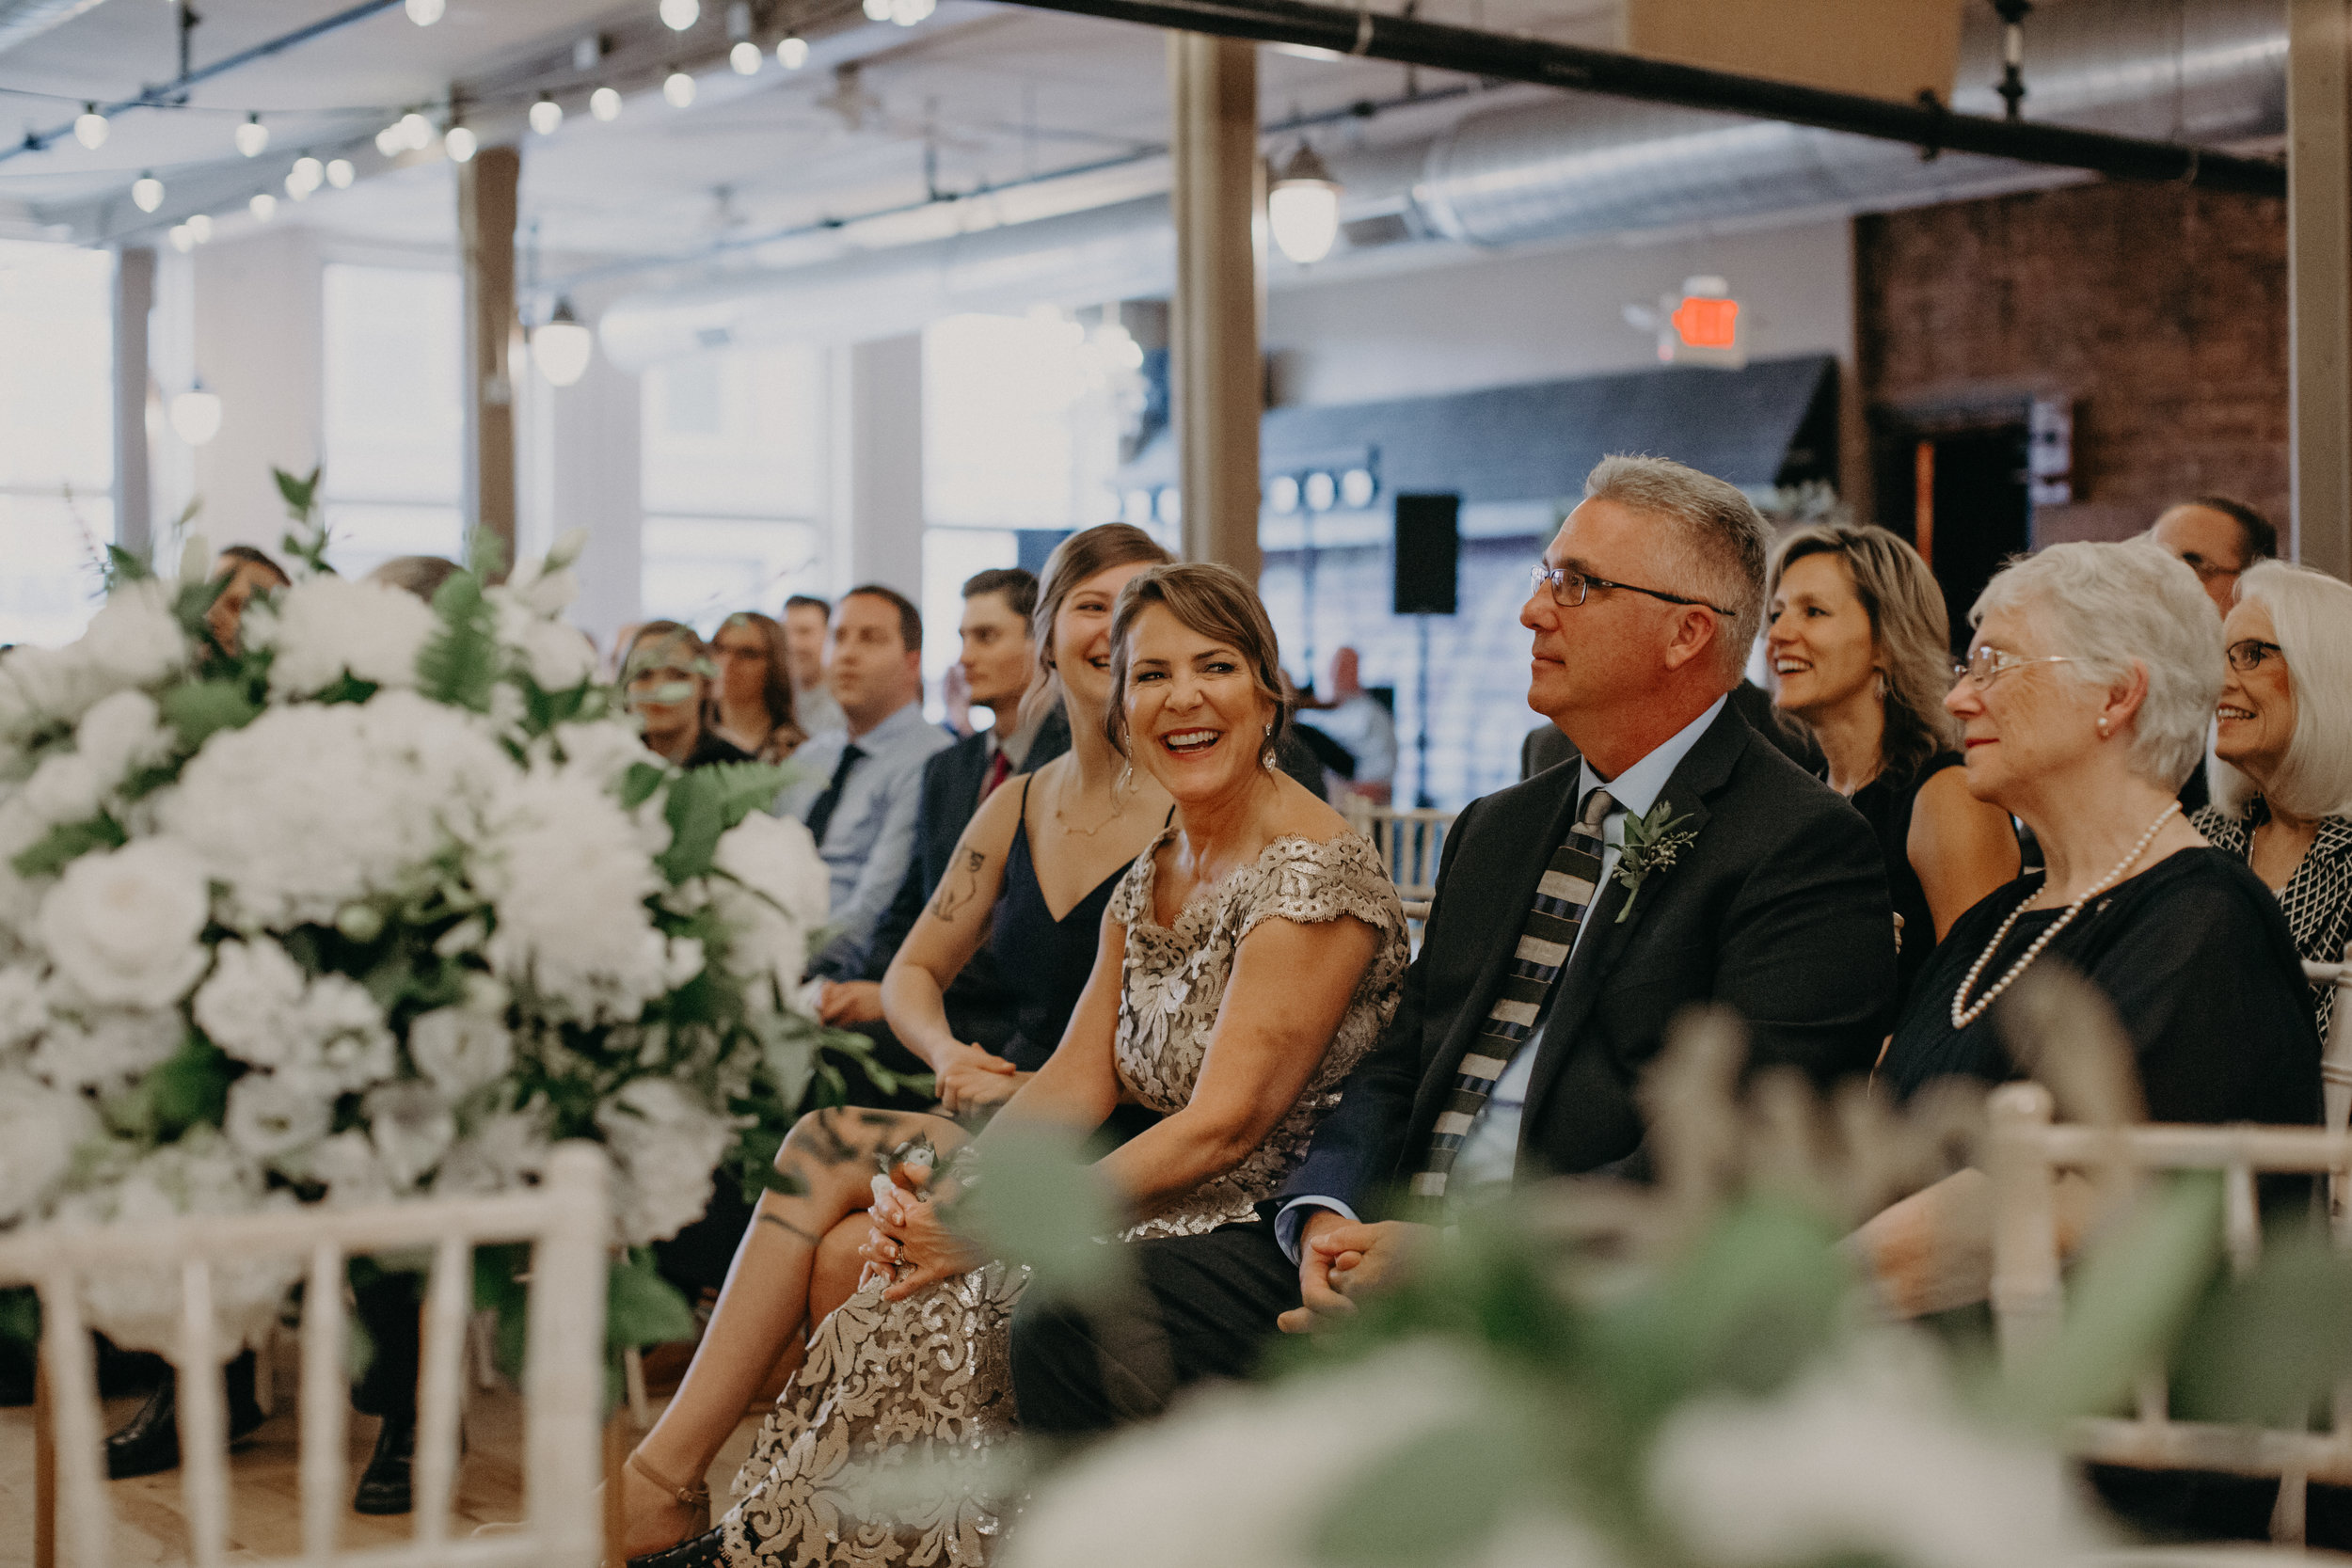 The Loft at Studio J is the perfect laid back and unique wedding venue in Stillwater MN